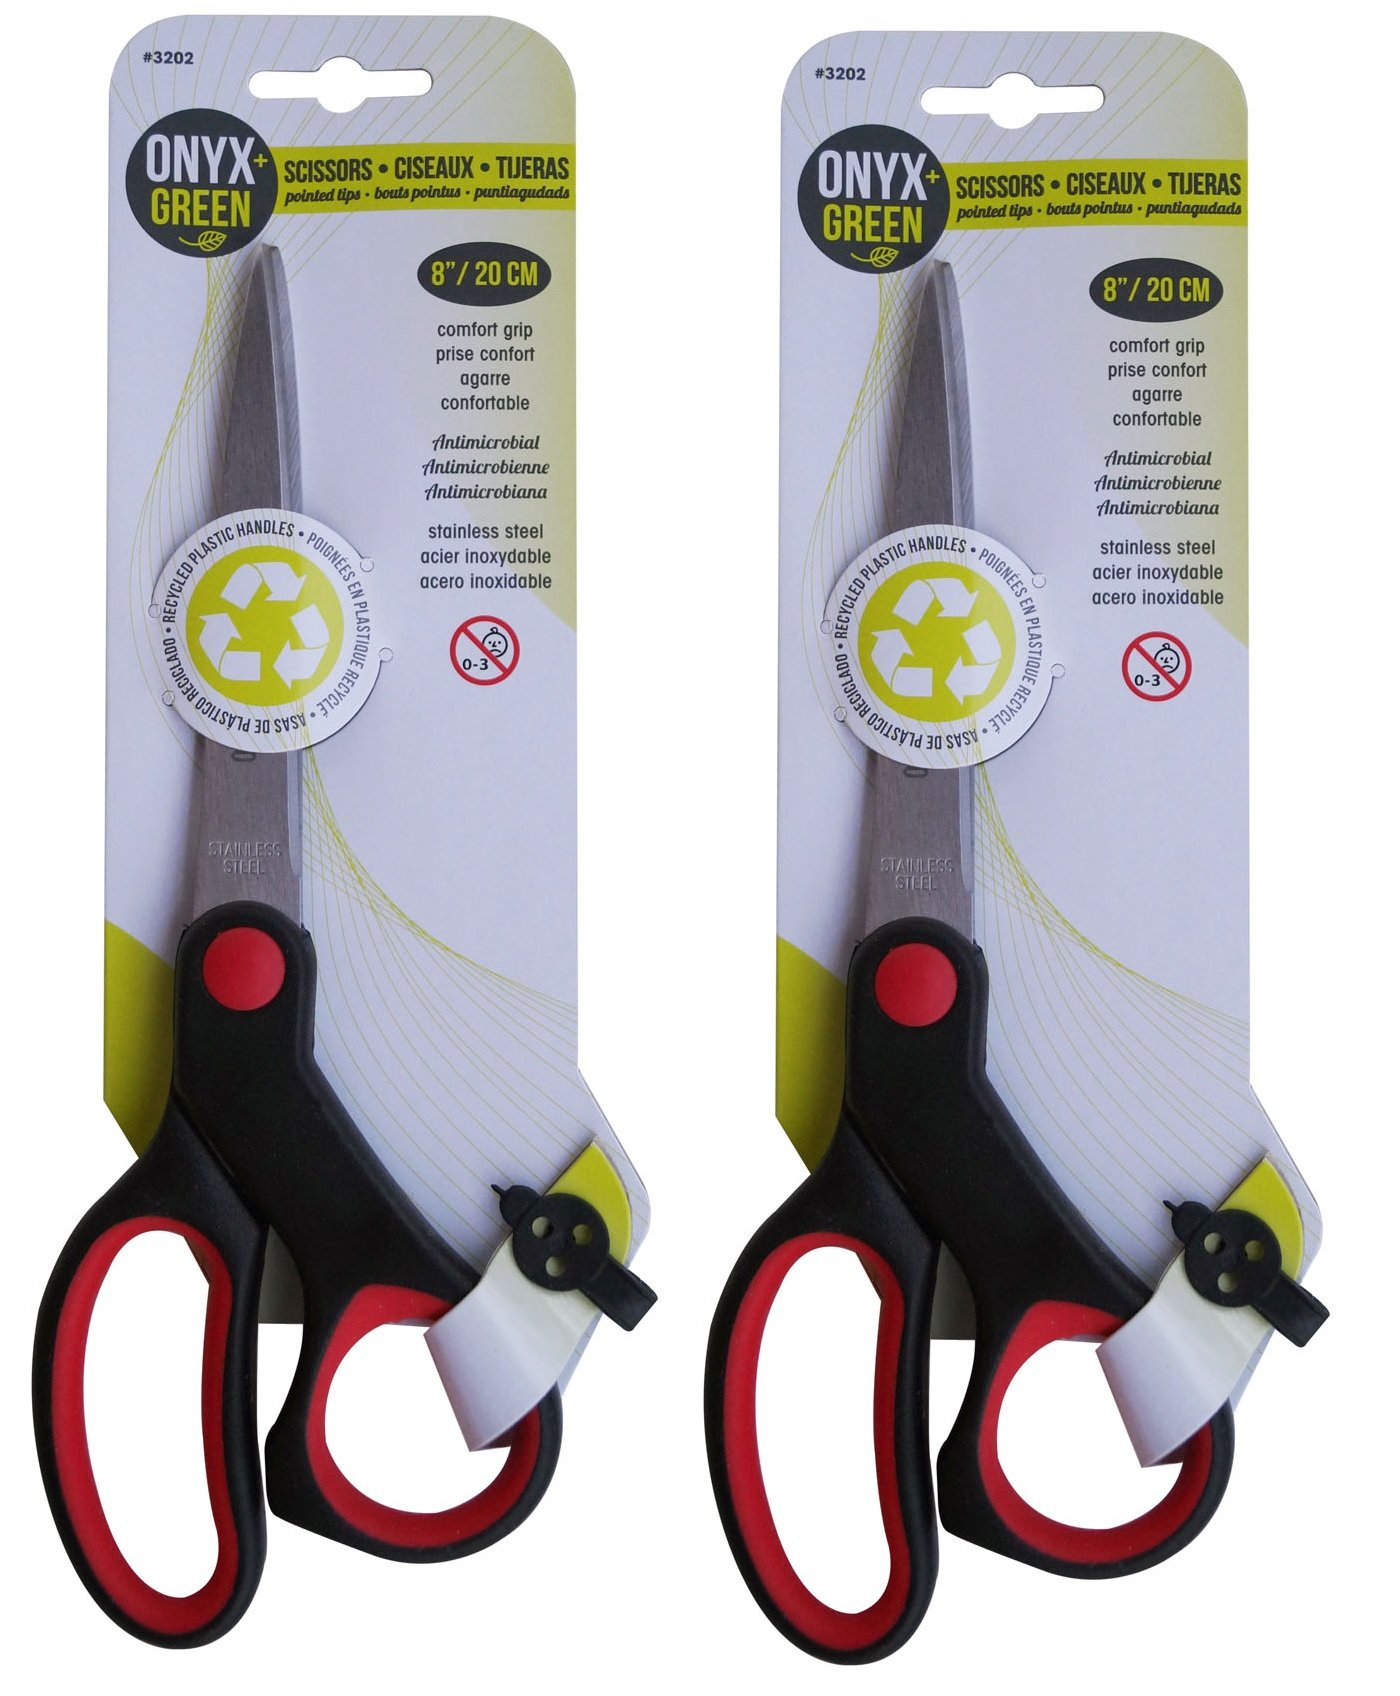 """ONYX+GREEN Comfortgrip Scissors, 8"""" Pointed Tip, (2 Pack of 1 Pair) Eco-Friendly Scissors Made from Anti-Microbial Recycled Plastic– for School Supplies, Office and Home"""